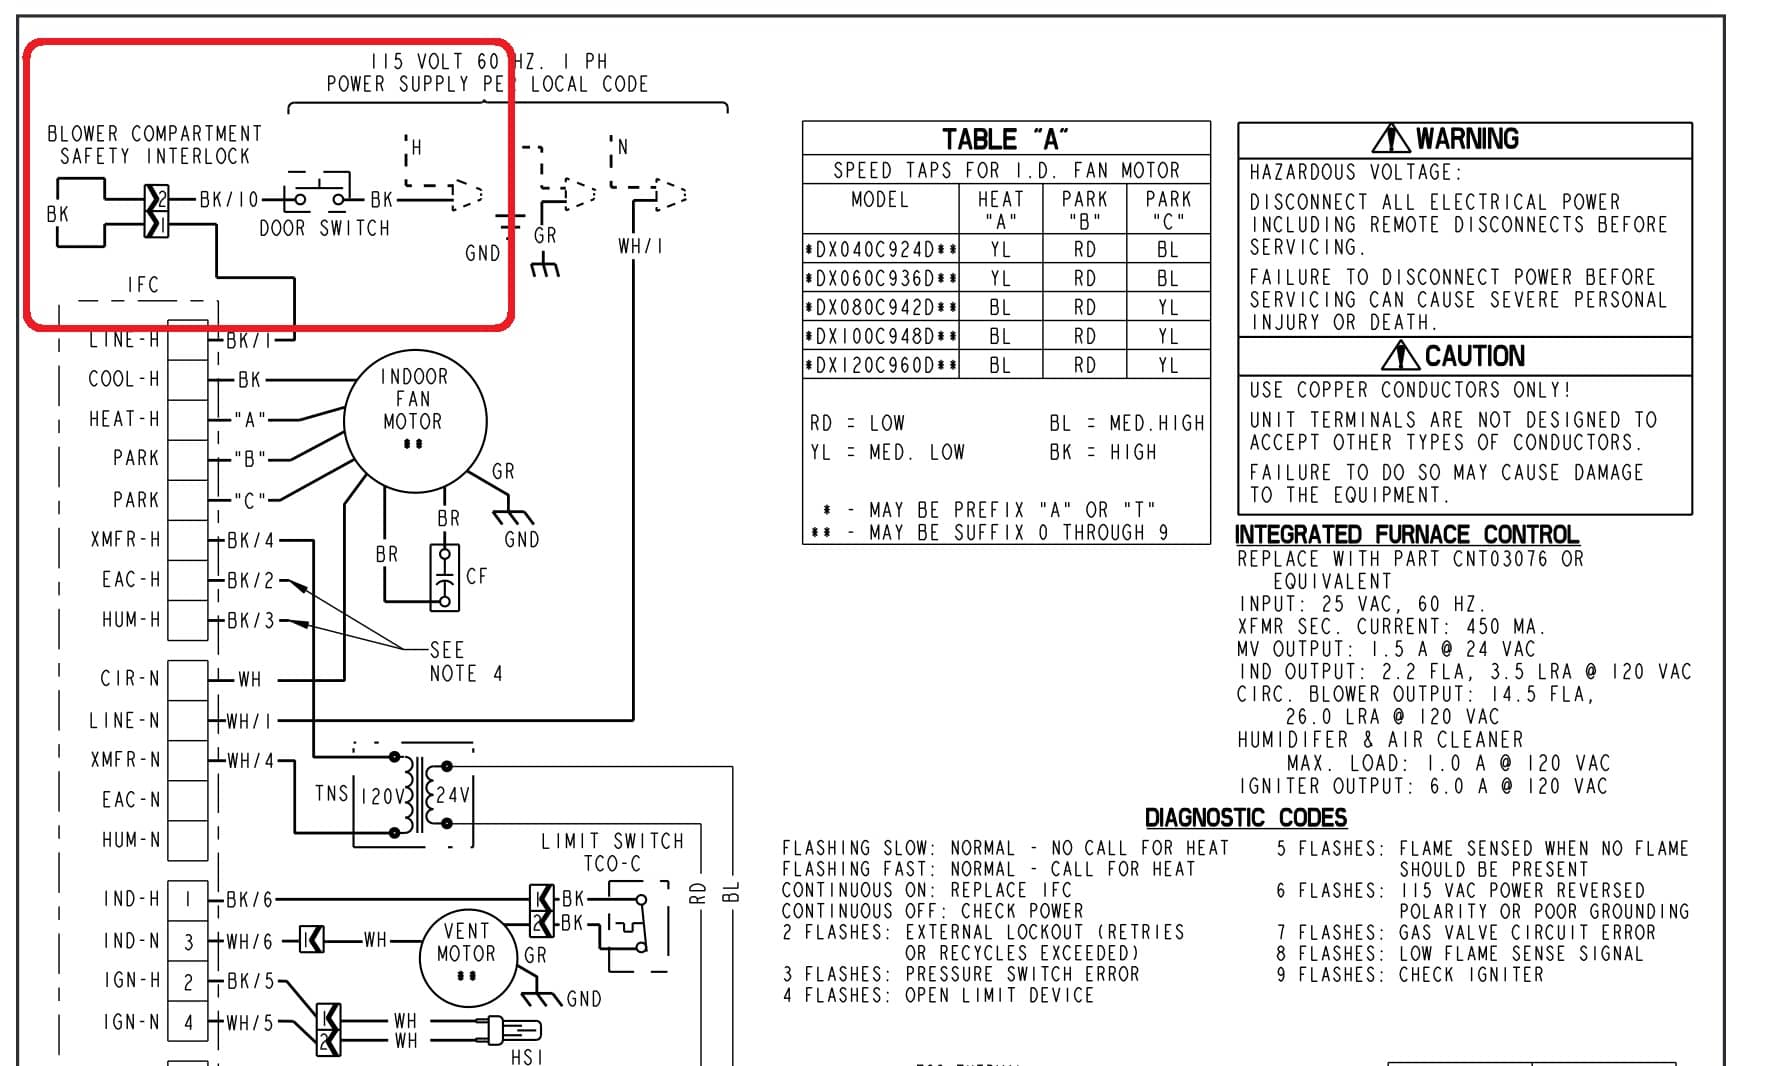 York Low Voltage Wiring Diagrams Car Parts And Of Nordyne Ac Diagram besides Bryant Air Conditioner Wiring Diagram 5a24cbcd96300 On Carrier Heat Pump moreover Icp Heat Pump Wiring Diagram furthermore Honeywell Thermostat Rth6350 Wiring Diagram besides Understanding  plex Wiring Diagrams. on york heat pump thermostat wiring